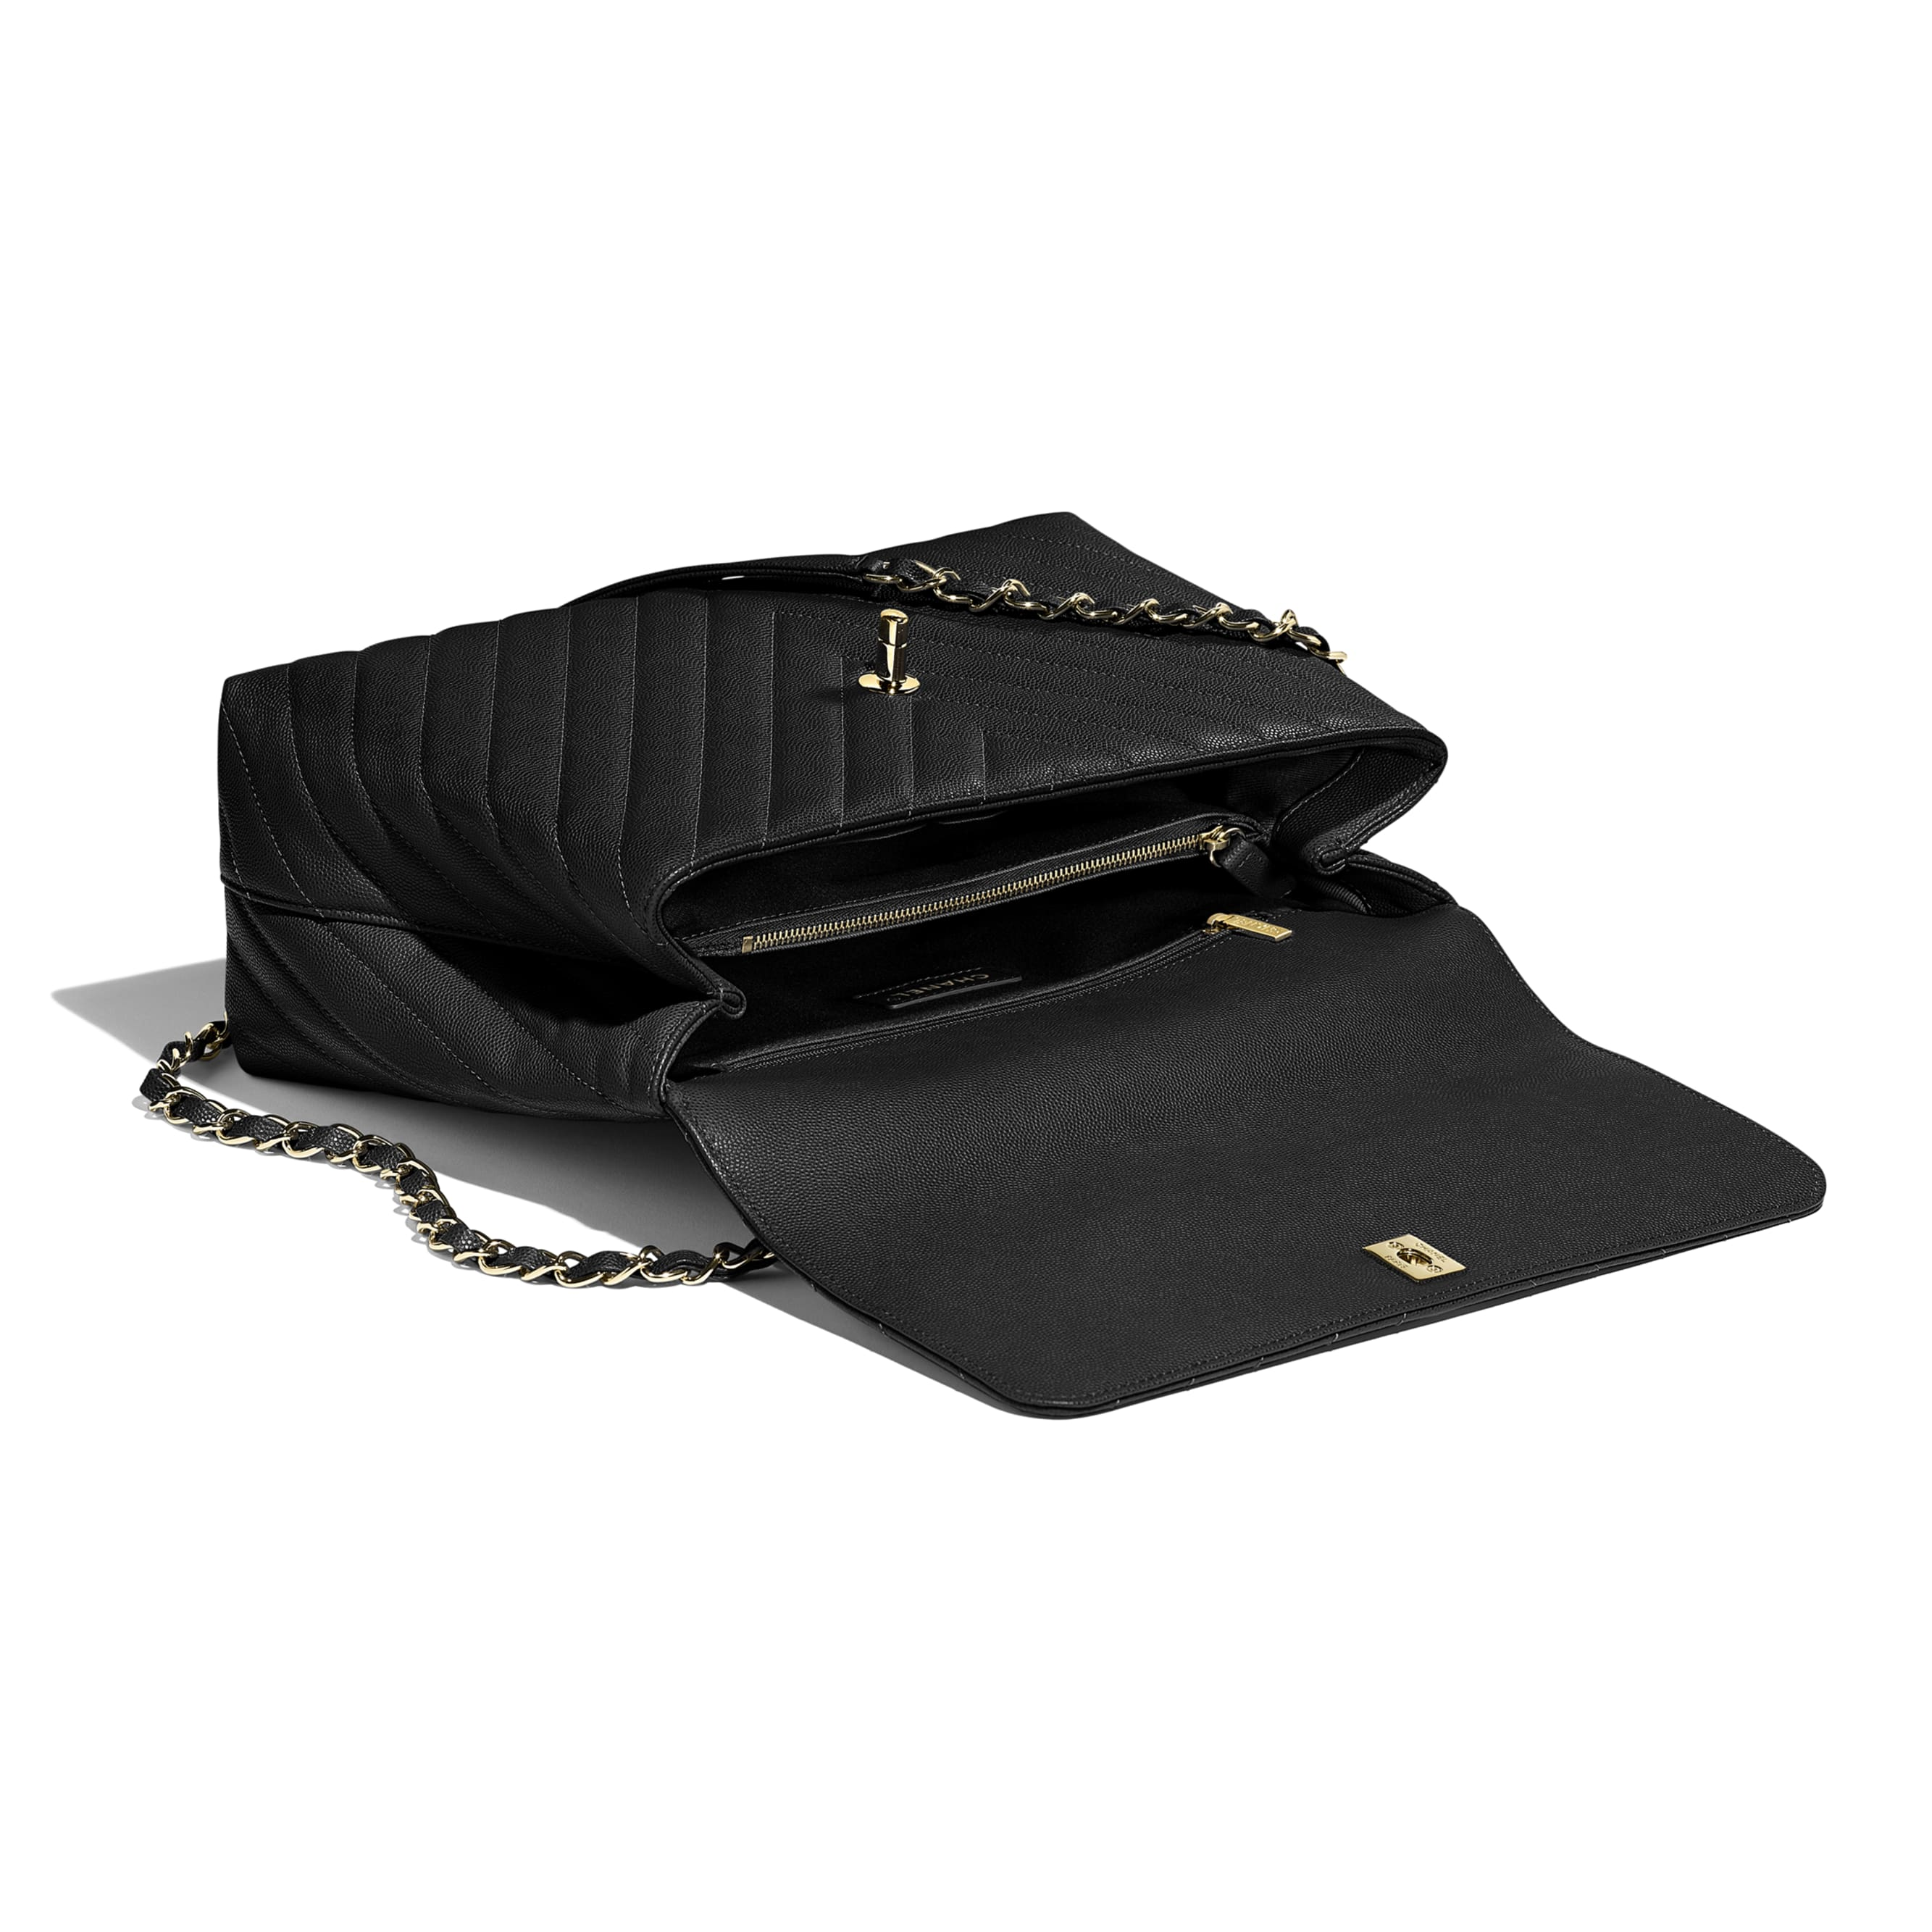 Large Flap Bag with Top Handle - Black - Grained Calfskin & Gold-Tone Metal - CHANEL - Other view - see standard sized version